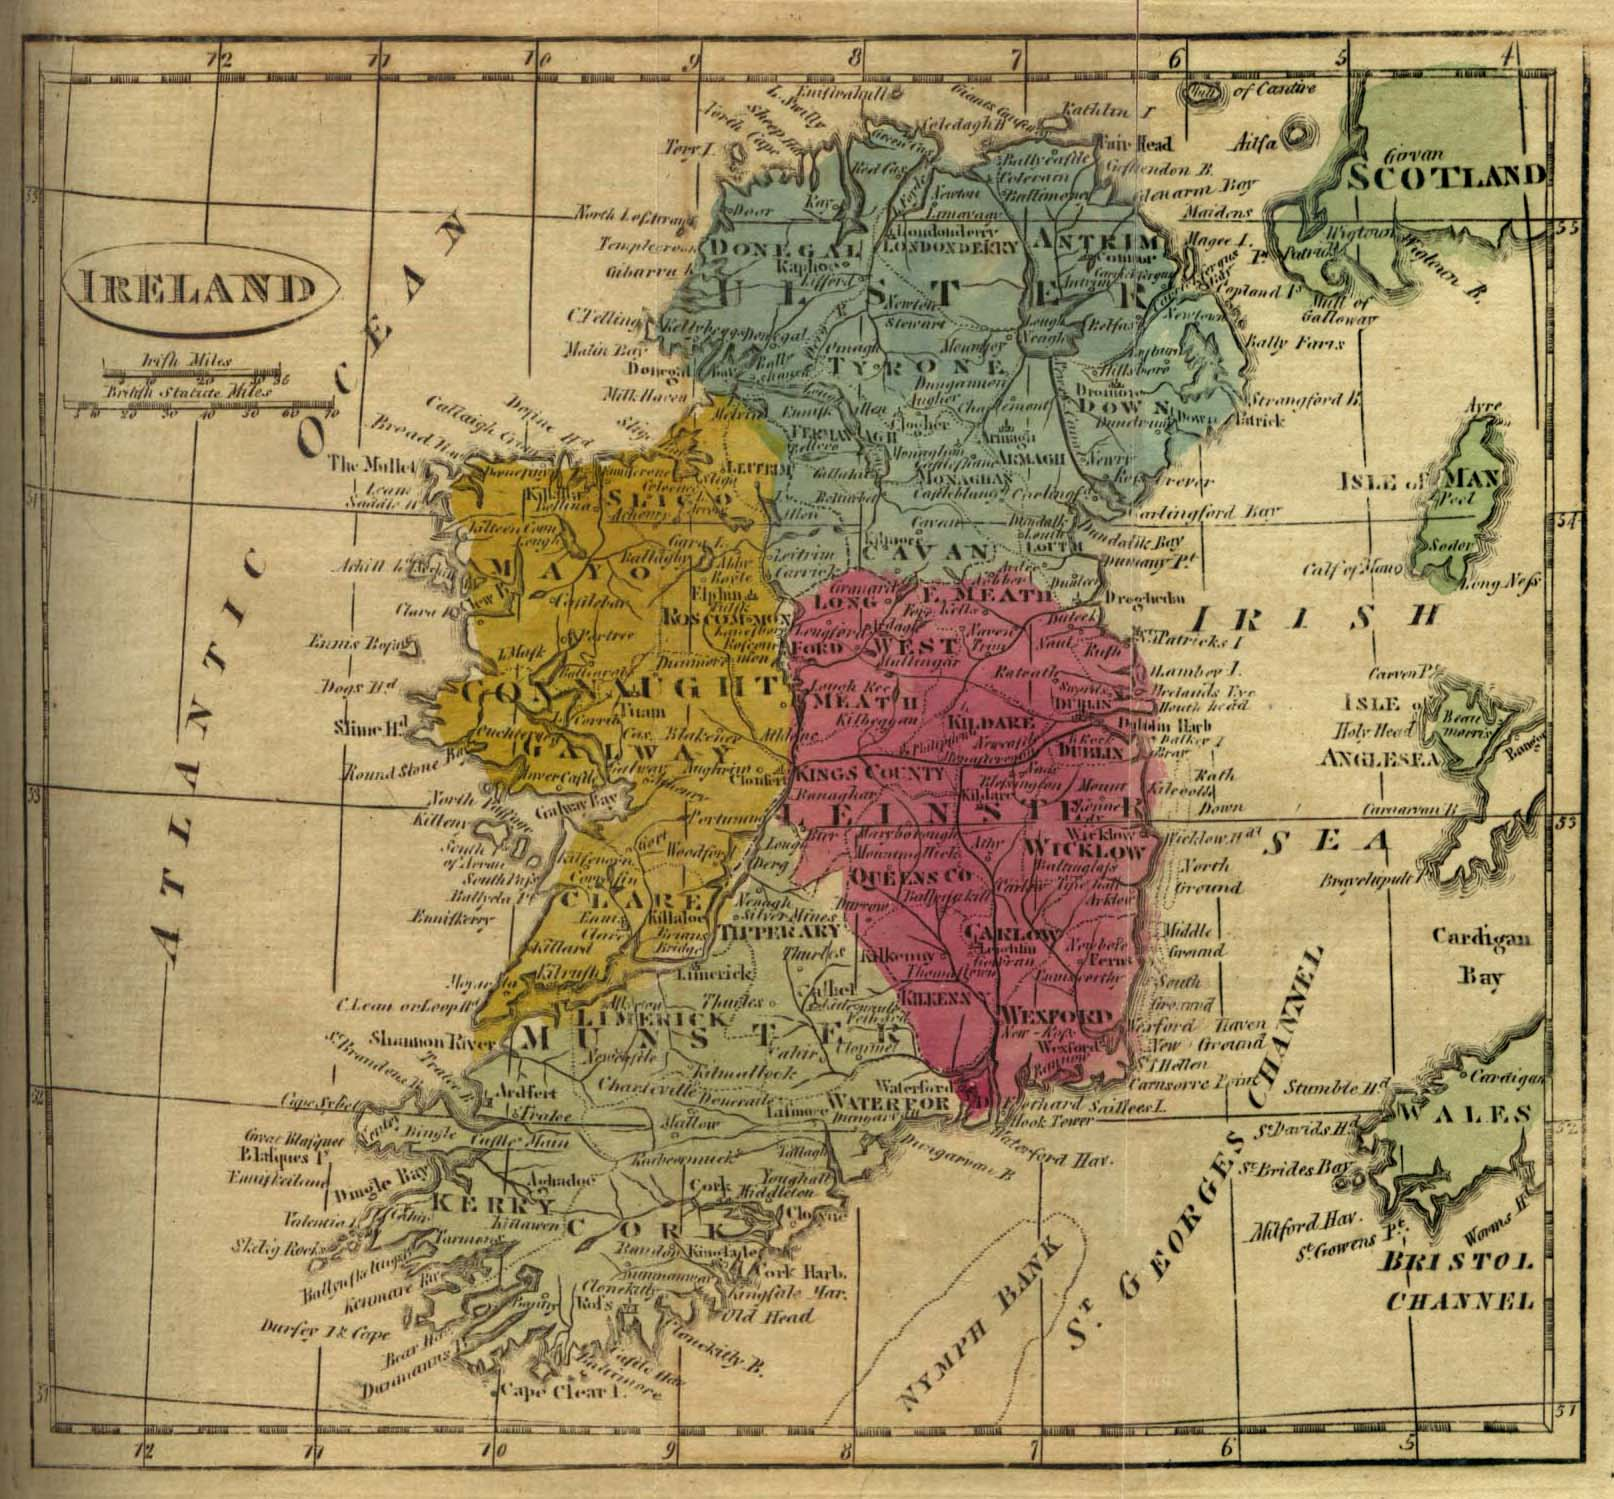 Ireland - old map 1808. The four historic regions, Ulster (blue),Leinster, Connaught, Munster